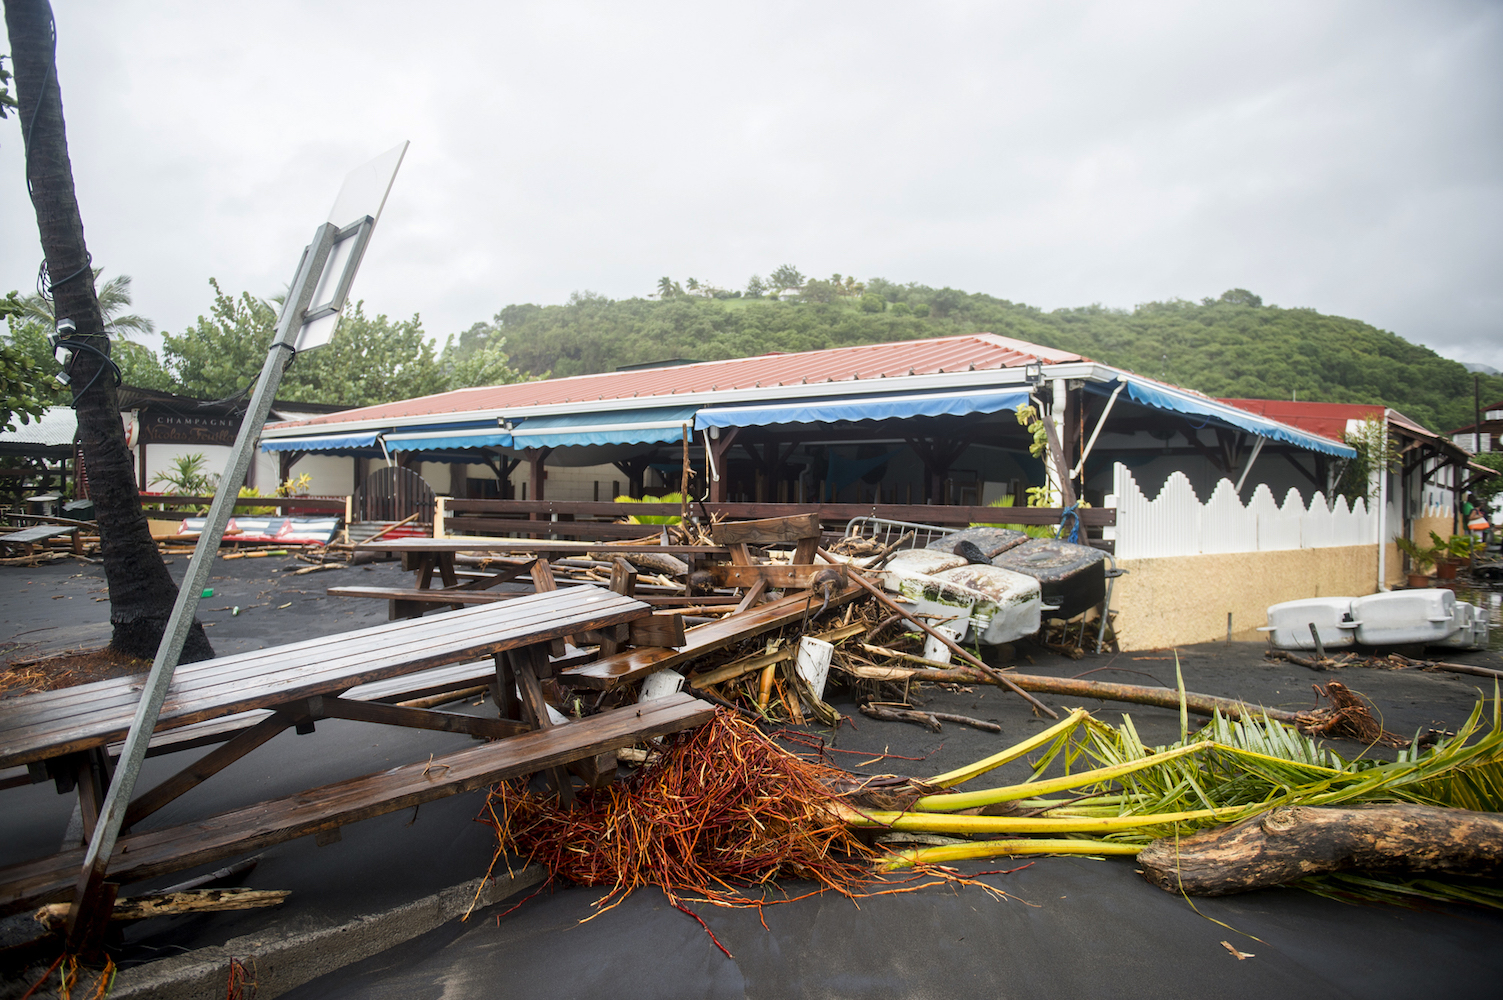 <div class='meta'><div class='origin-logo' data-origin='Creative Content'></div><span class='caption-text' data-credit='LIONEL CHAMOISEAU/AFP/Getty'>A picture shows damages at a restaurant in Le Carbet, on the French Caribbean island of Martinique, after it was hit by Hurricane Maria, on September 19, 2017.</span></div>